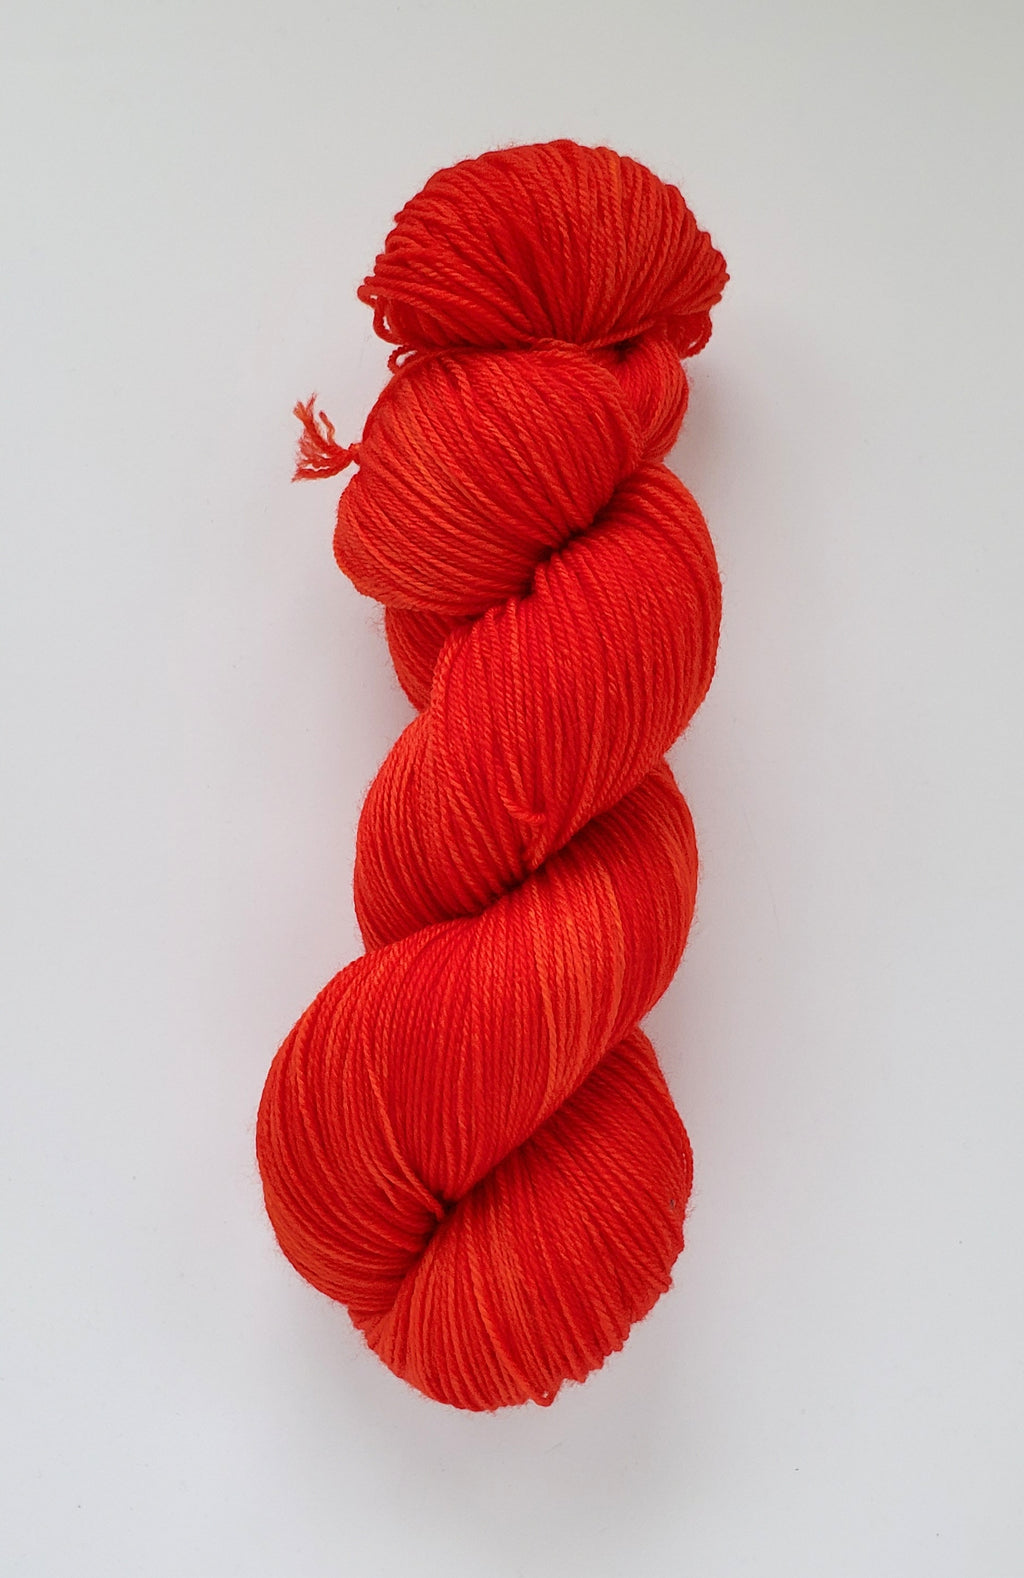 Joy Hand Dyed Yarn Semi Solid Orange